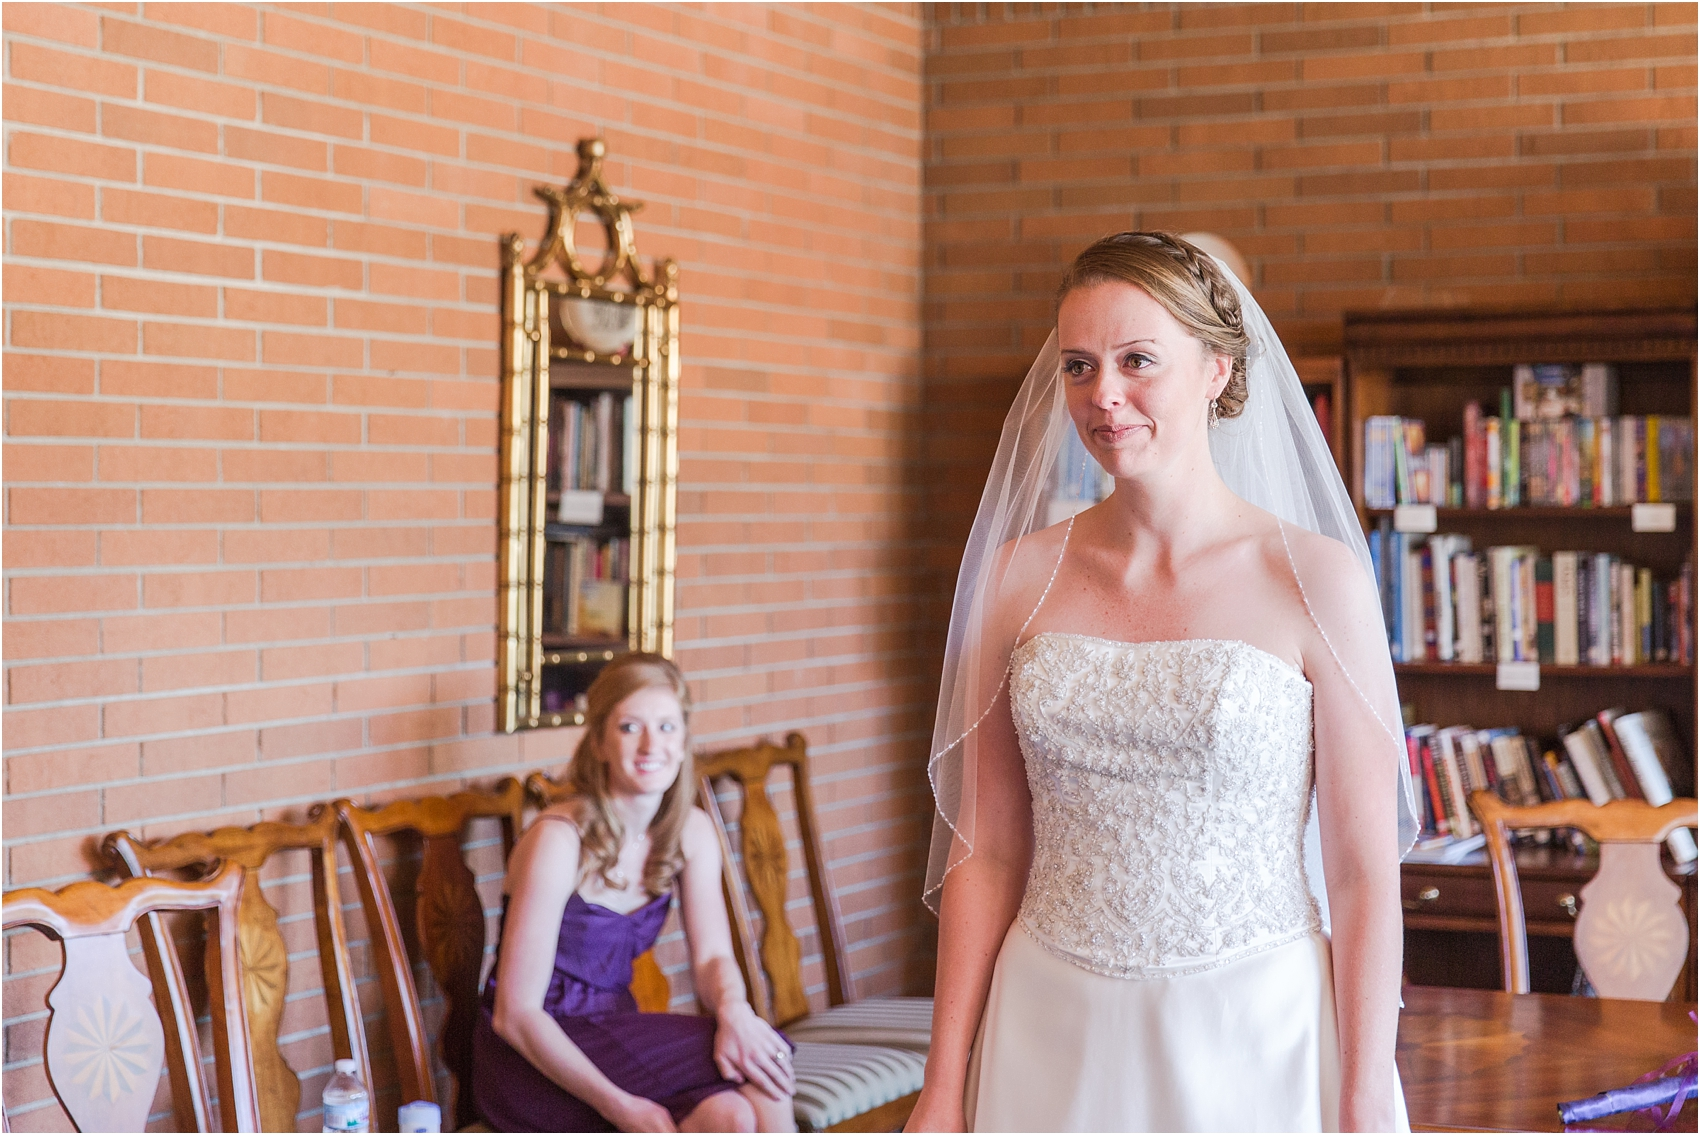 father-and-bride-share-emotional-first-look-on-wedding-day-photos-in-detroit-michigan-by-courtney-carolyn-photography_0024.jpg